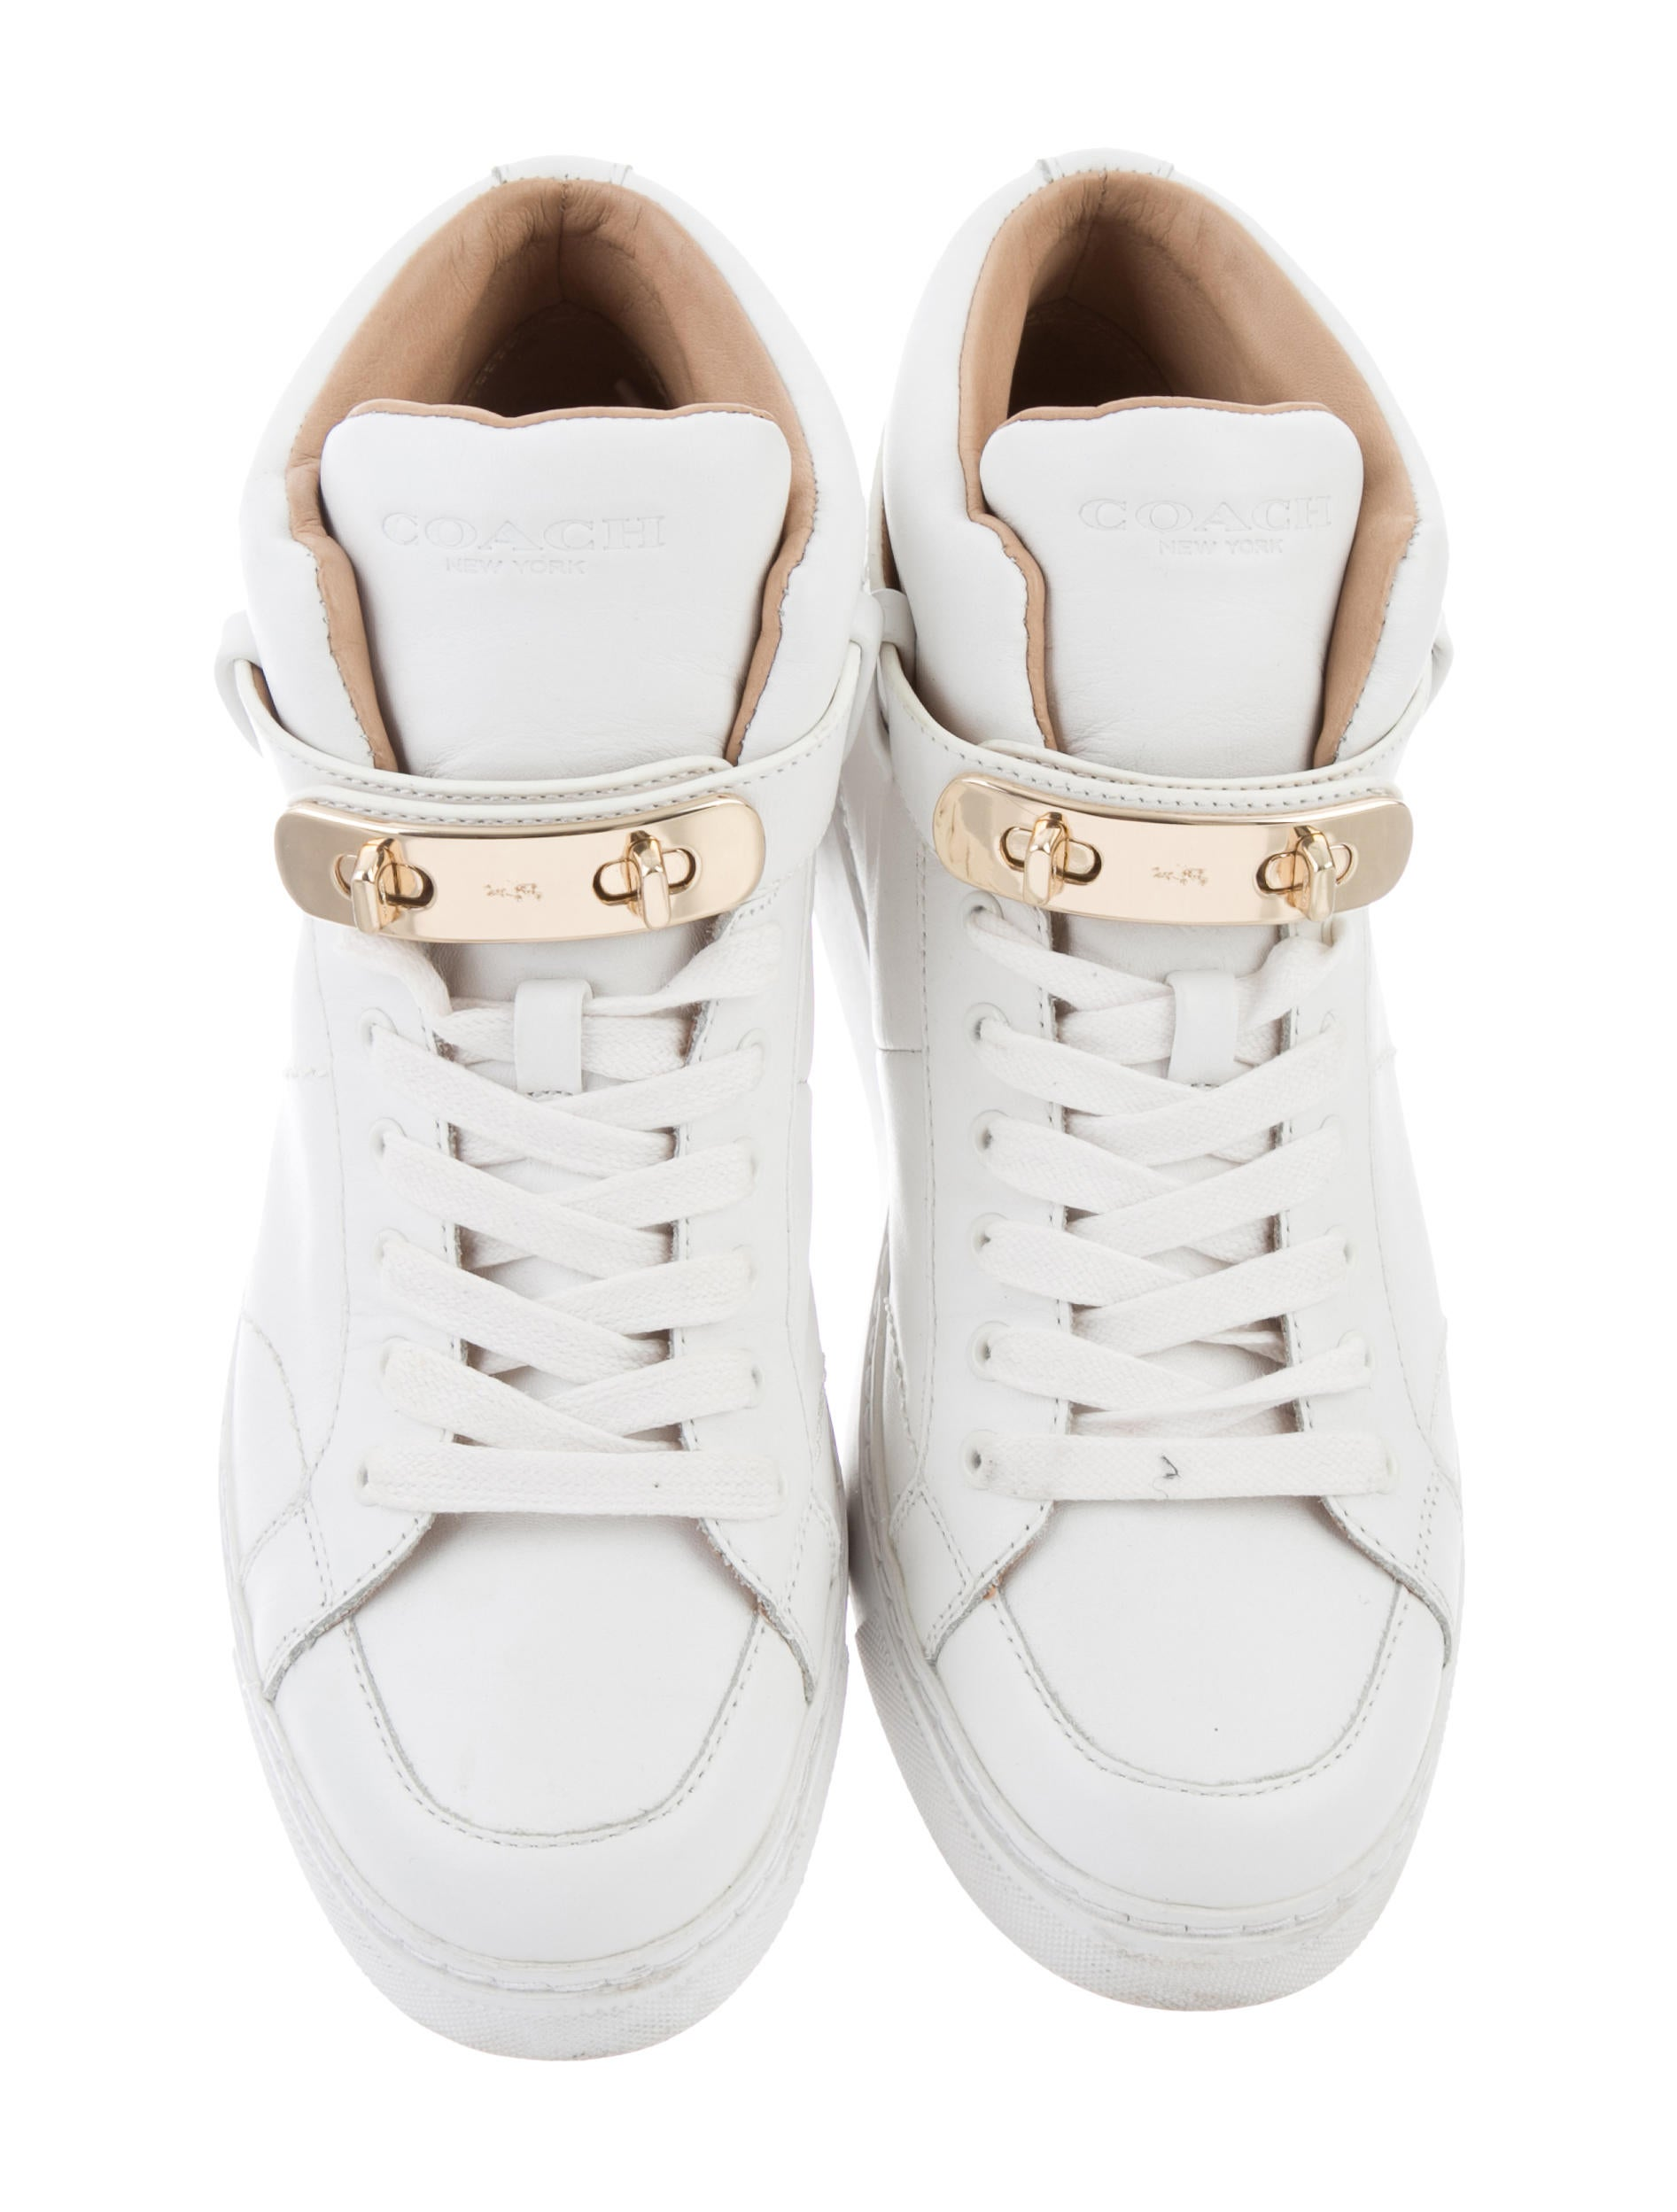 cheap sale in China reliable cheap price Coach Round-Toe High-Top Sneakers free shipping sast wK2rdUKbIG